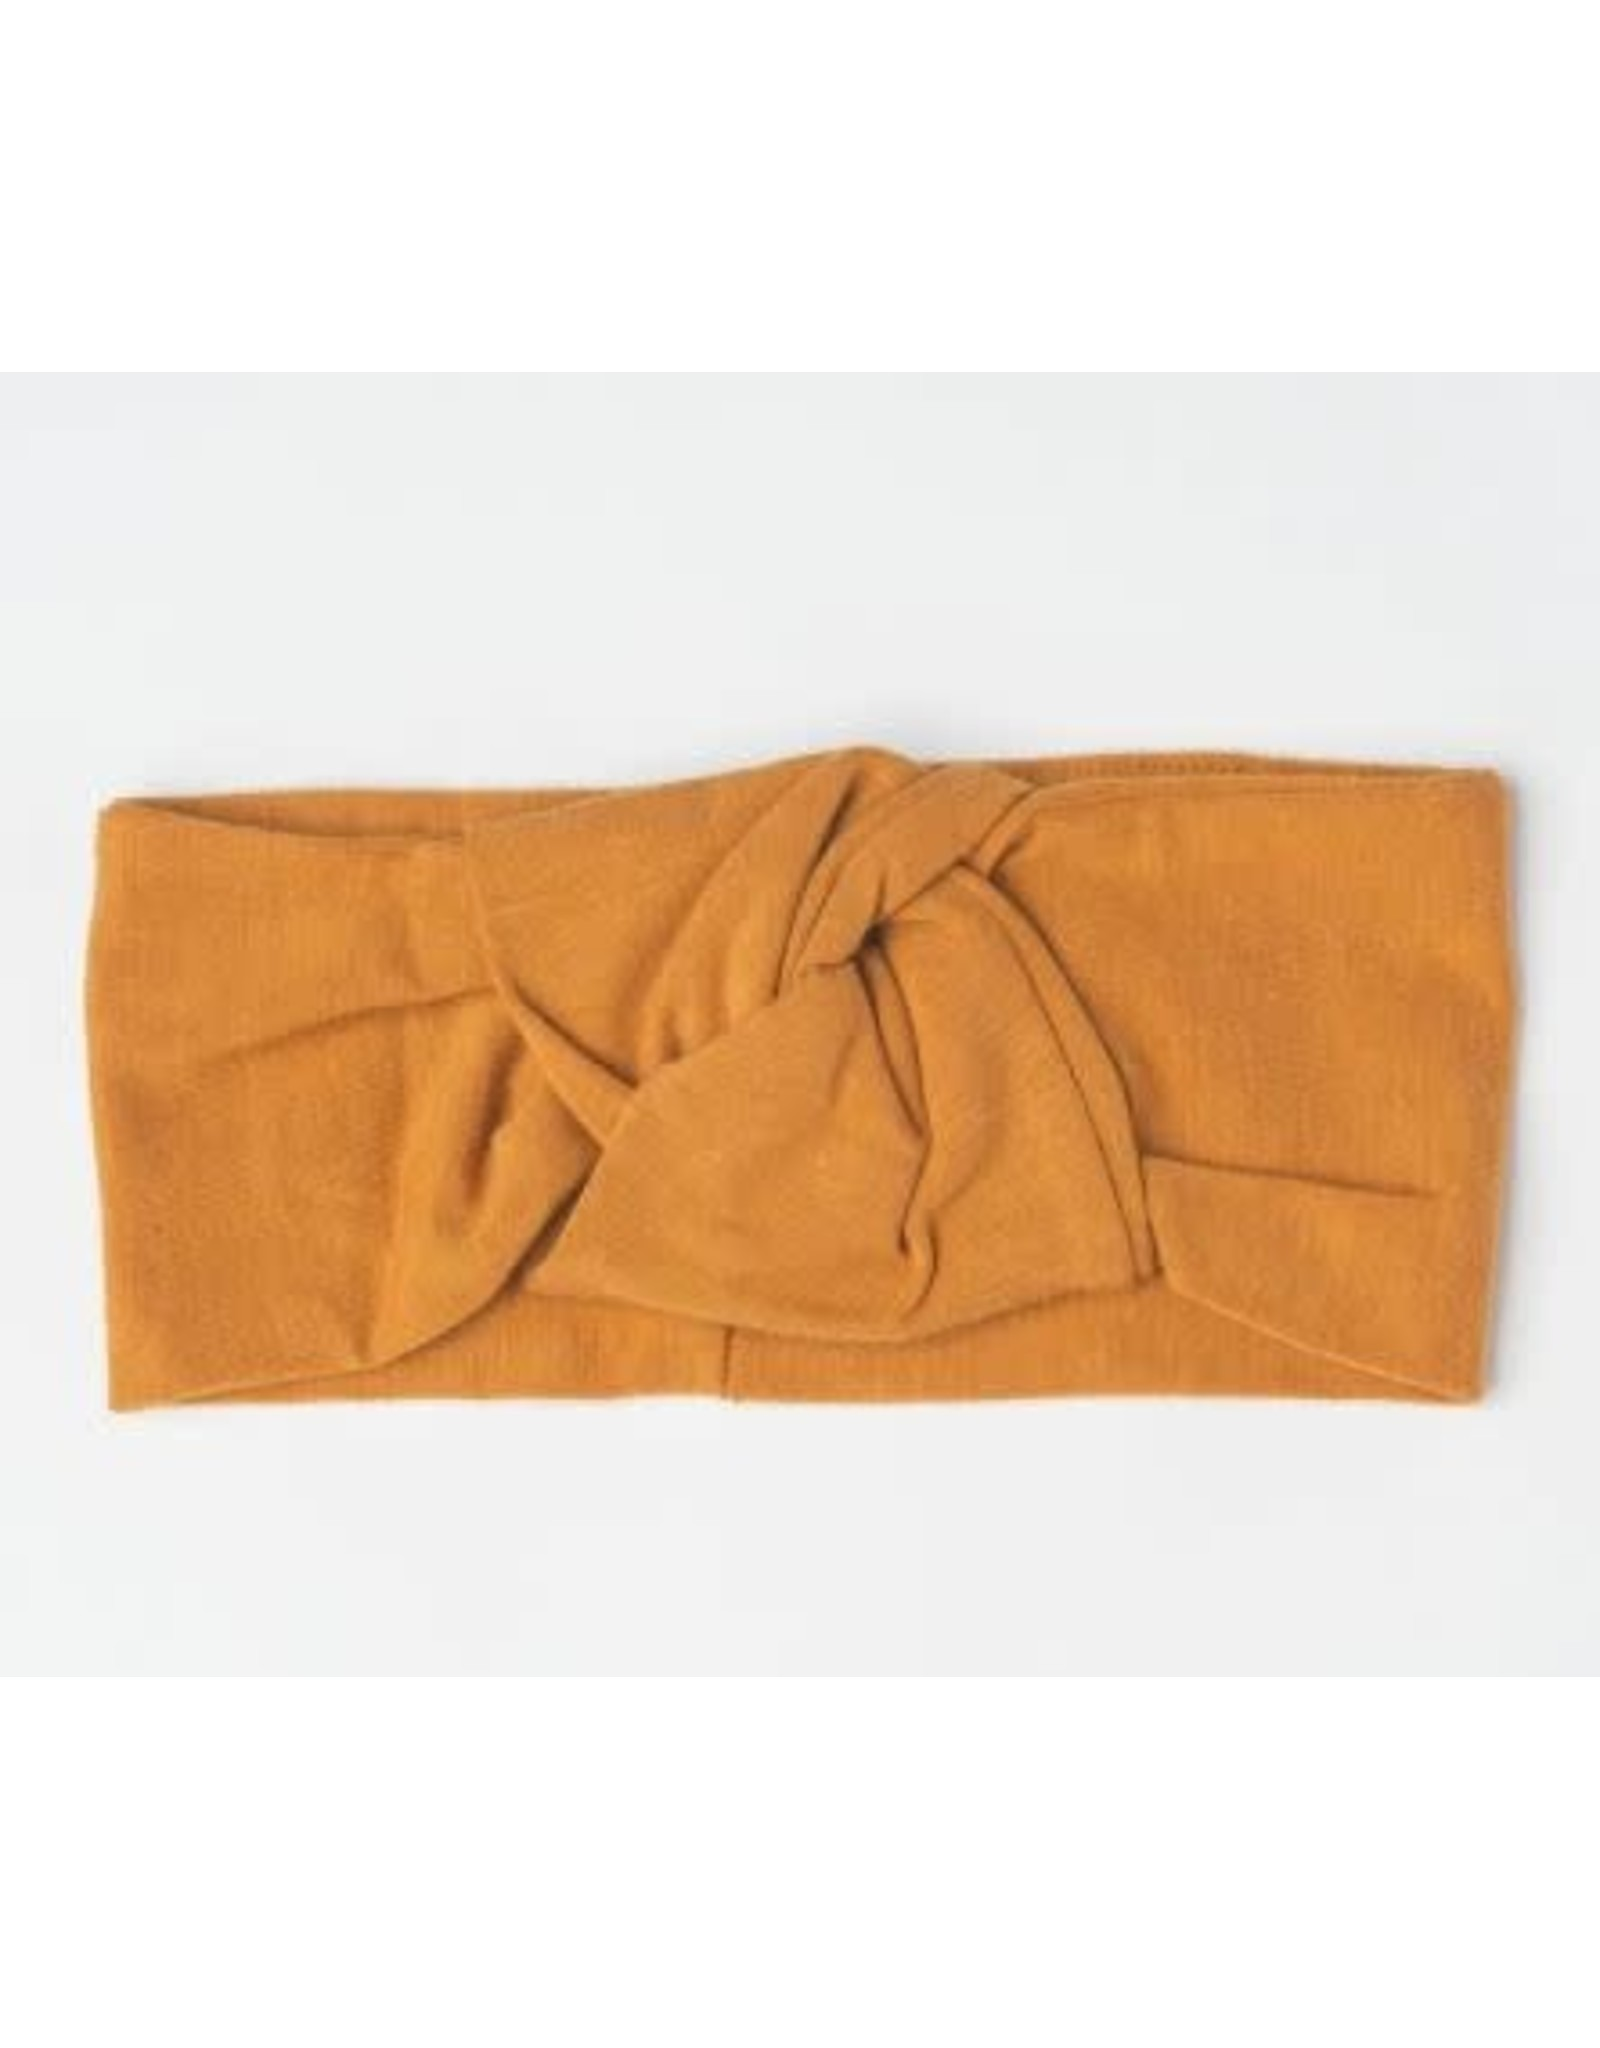 Loulou Lollipop Knotted Headband - Ginger Honey